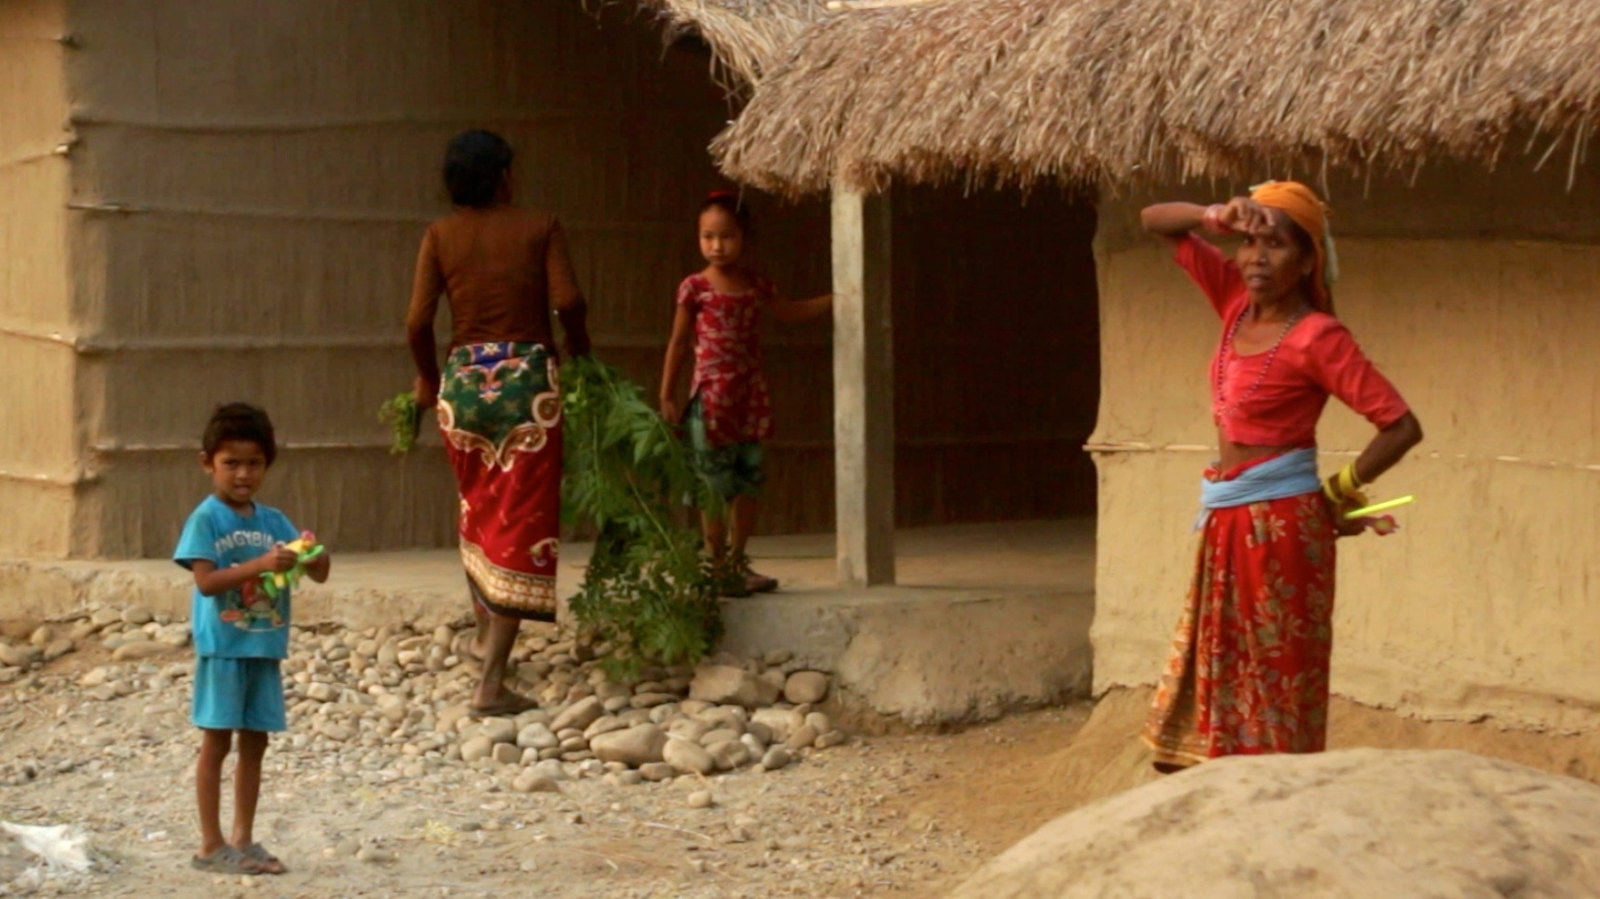 A village on the Terai. Photo: OXLAEY.com/Flickr